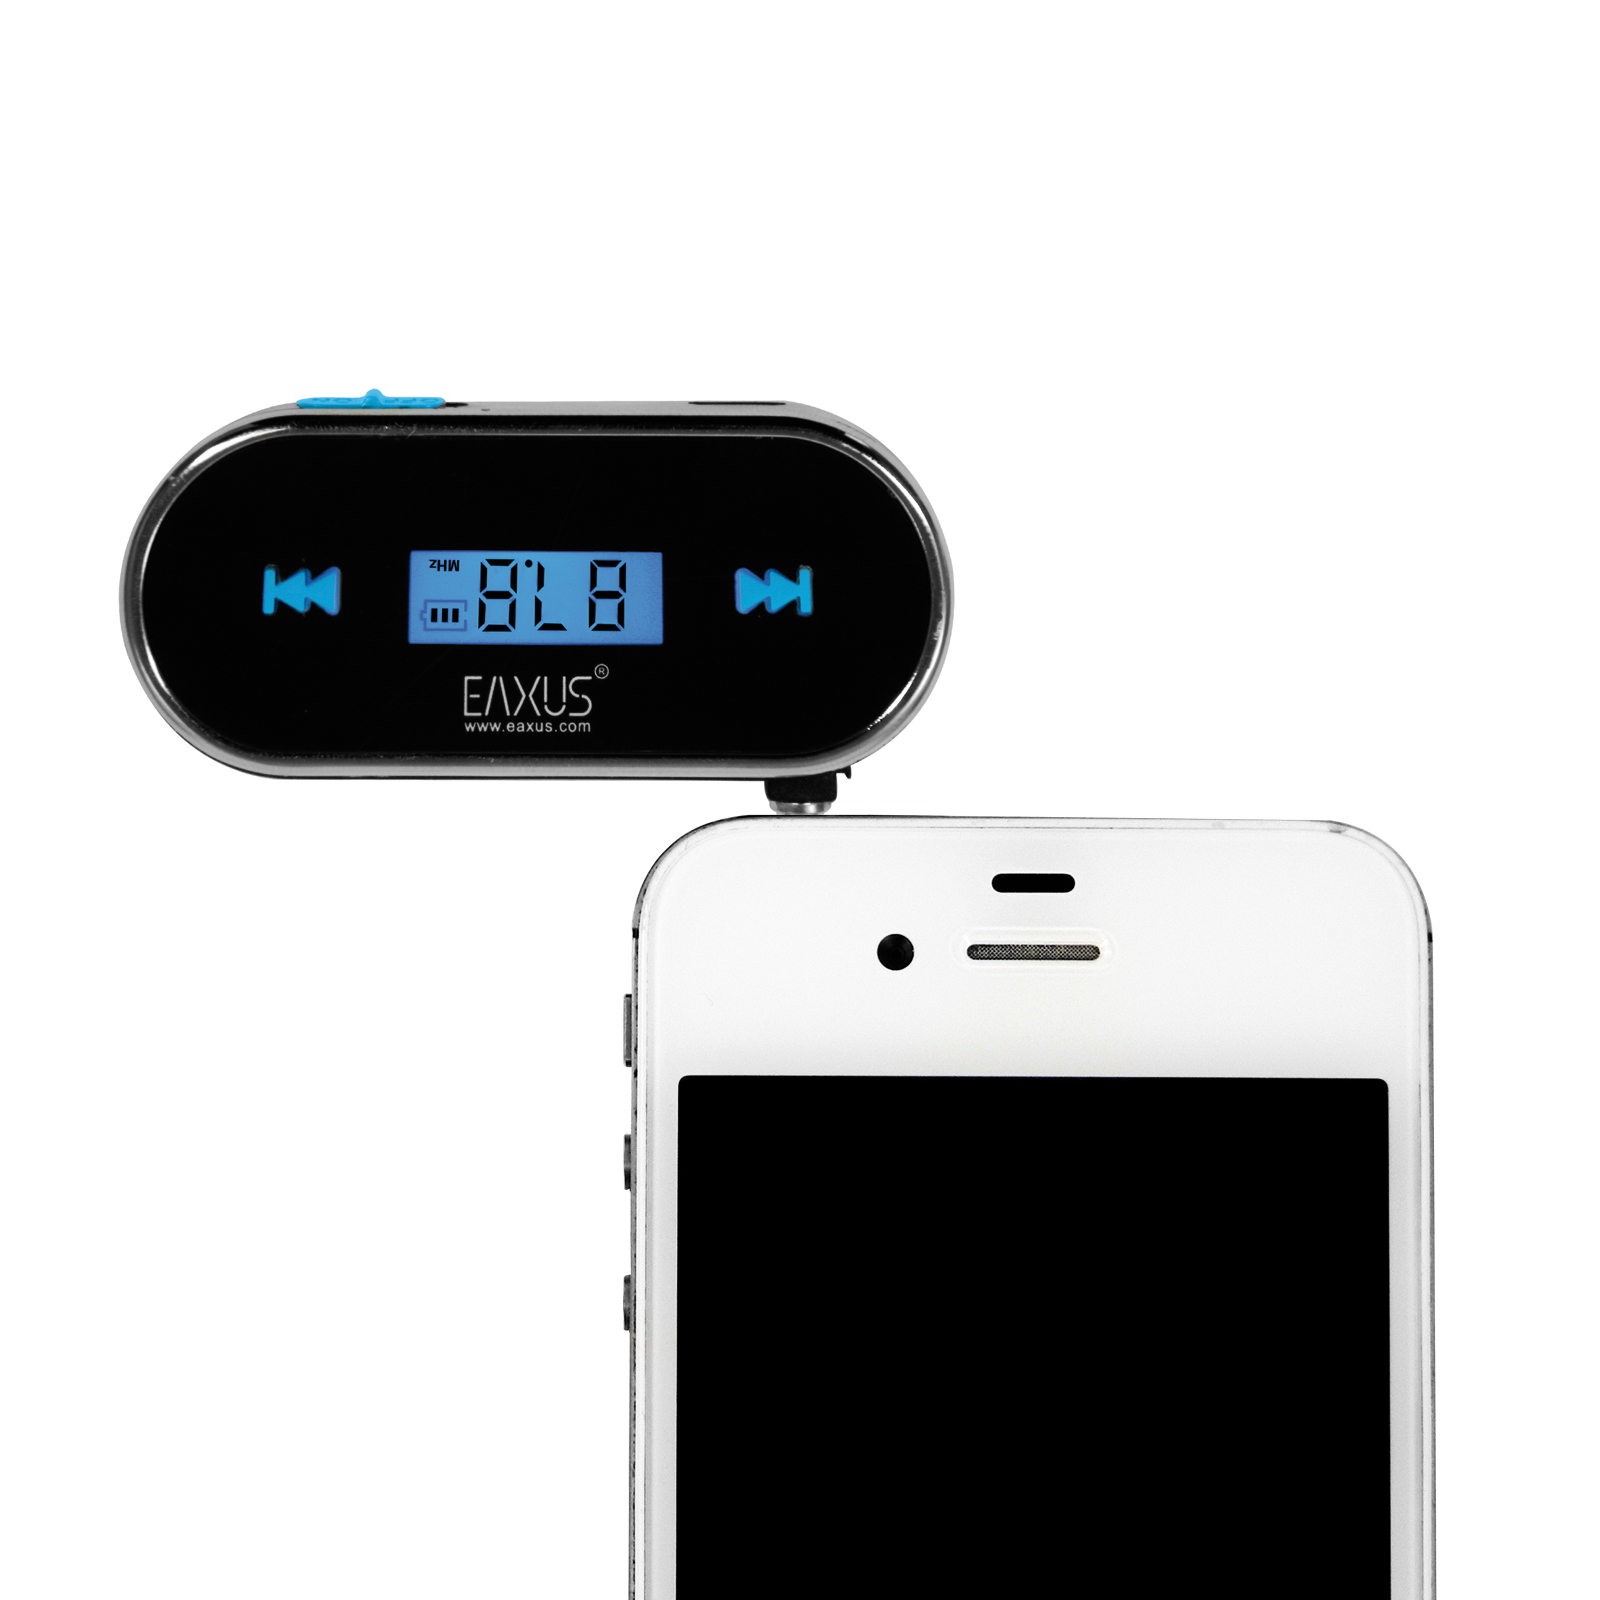 fm transmitter radioger t f r iphone 4 4s 5 5c 5s 6 6. Black Bedroom Furniture Sets. Home Design Ideas